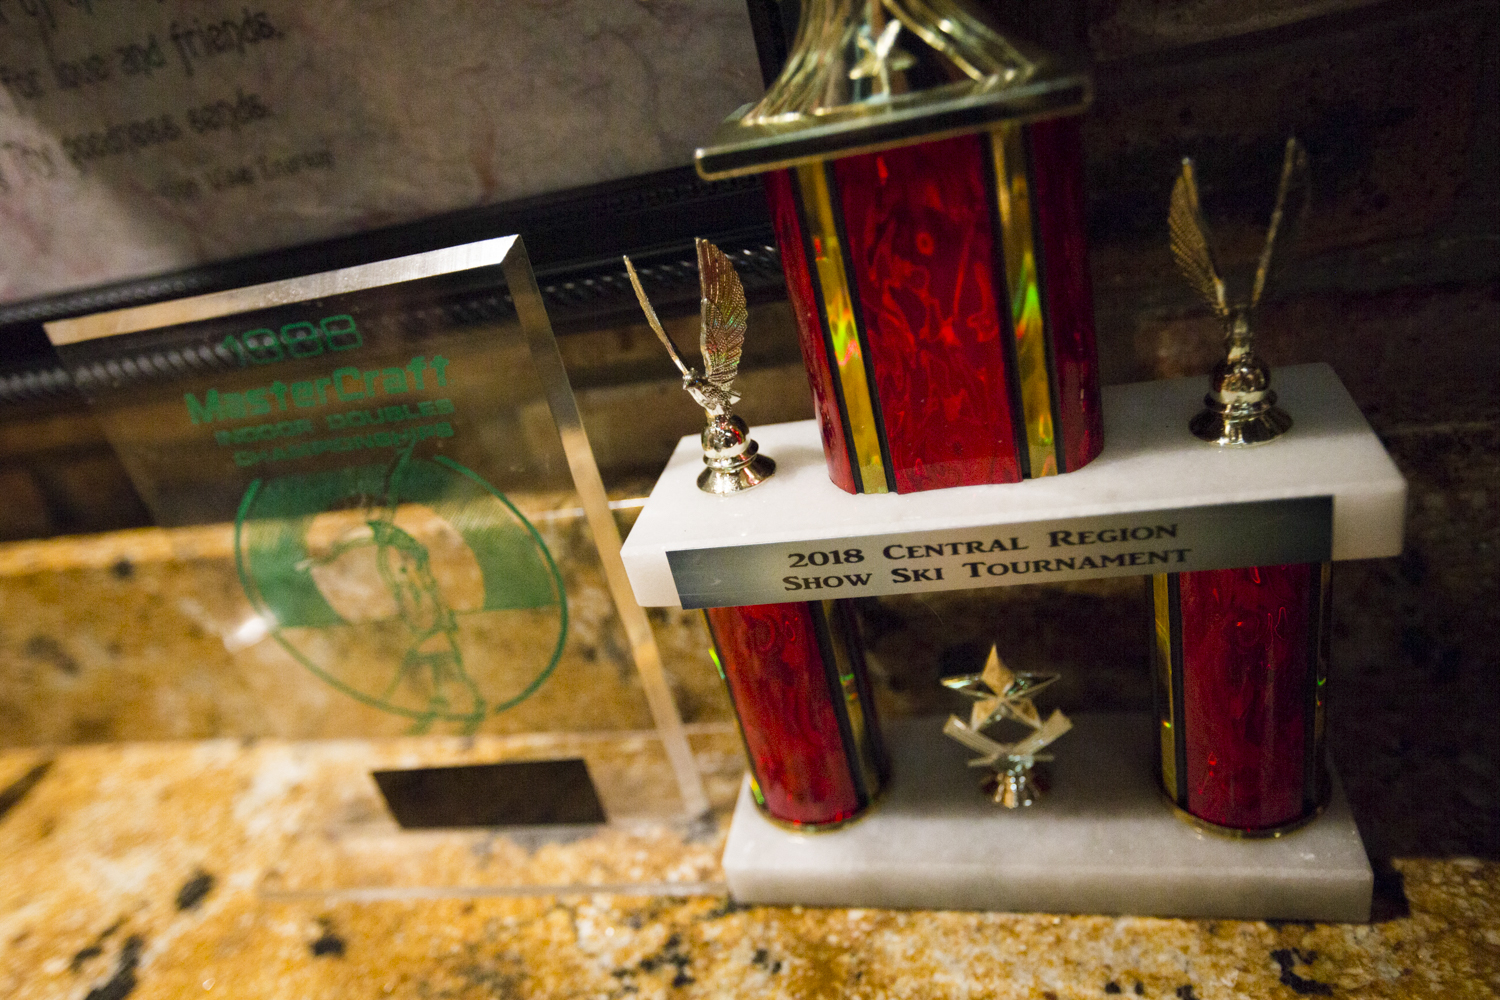 Randy and Wendy Seerup have been skiing together since before they were married. One trophy is from 1988, early in their career, and the other is from this season, seen on Friday, Aug. 17, 2018, at the Seerup's home in Machesney Park. [SCOTT P. YATES/RRSTAR.COM STAFF]